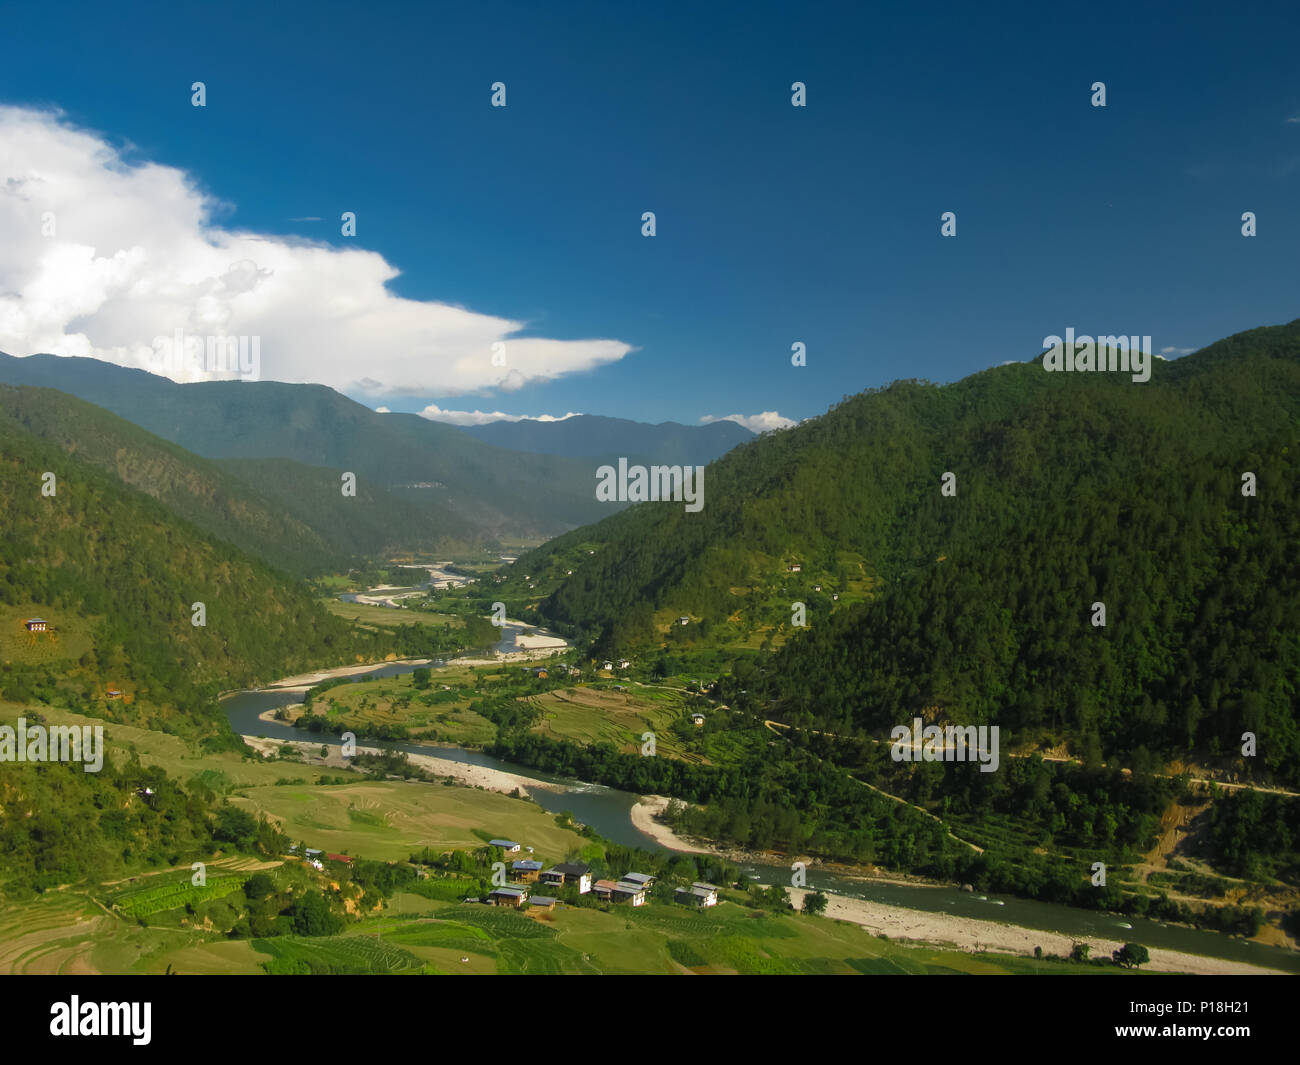 View to Mo Chhu river and Punakha-Wangdue valley from Khamsum Yulley Namgyal Temple in Bhutan - Stock Image